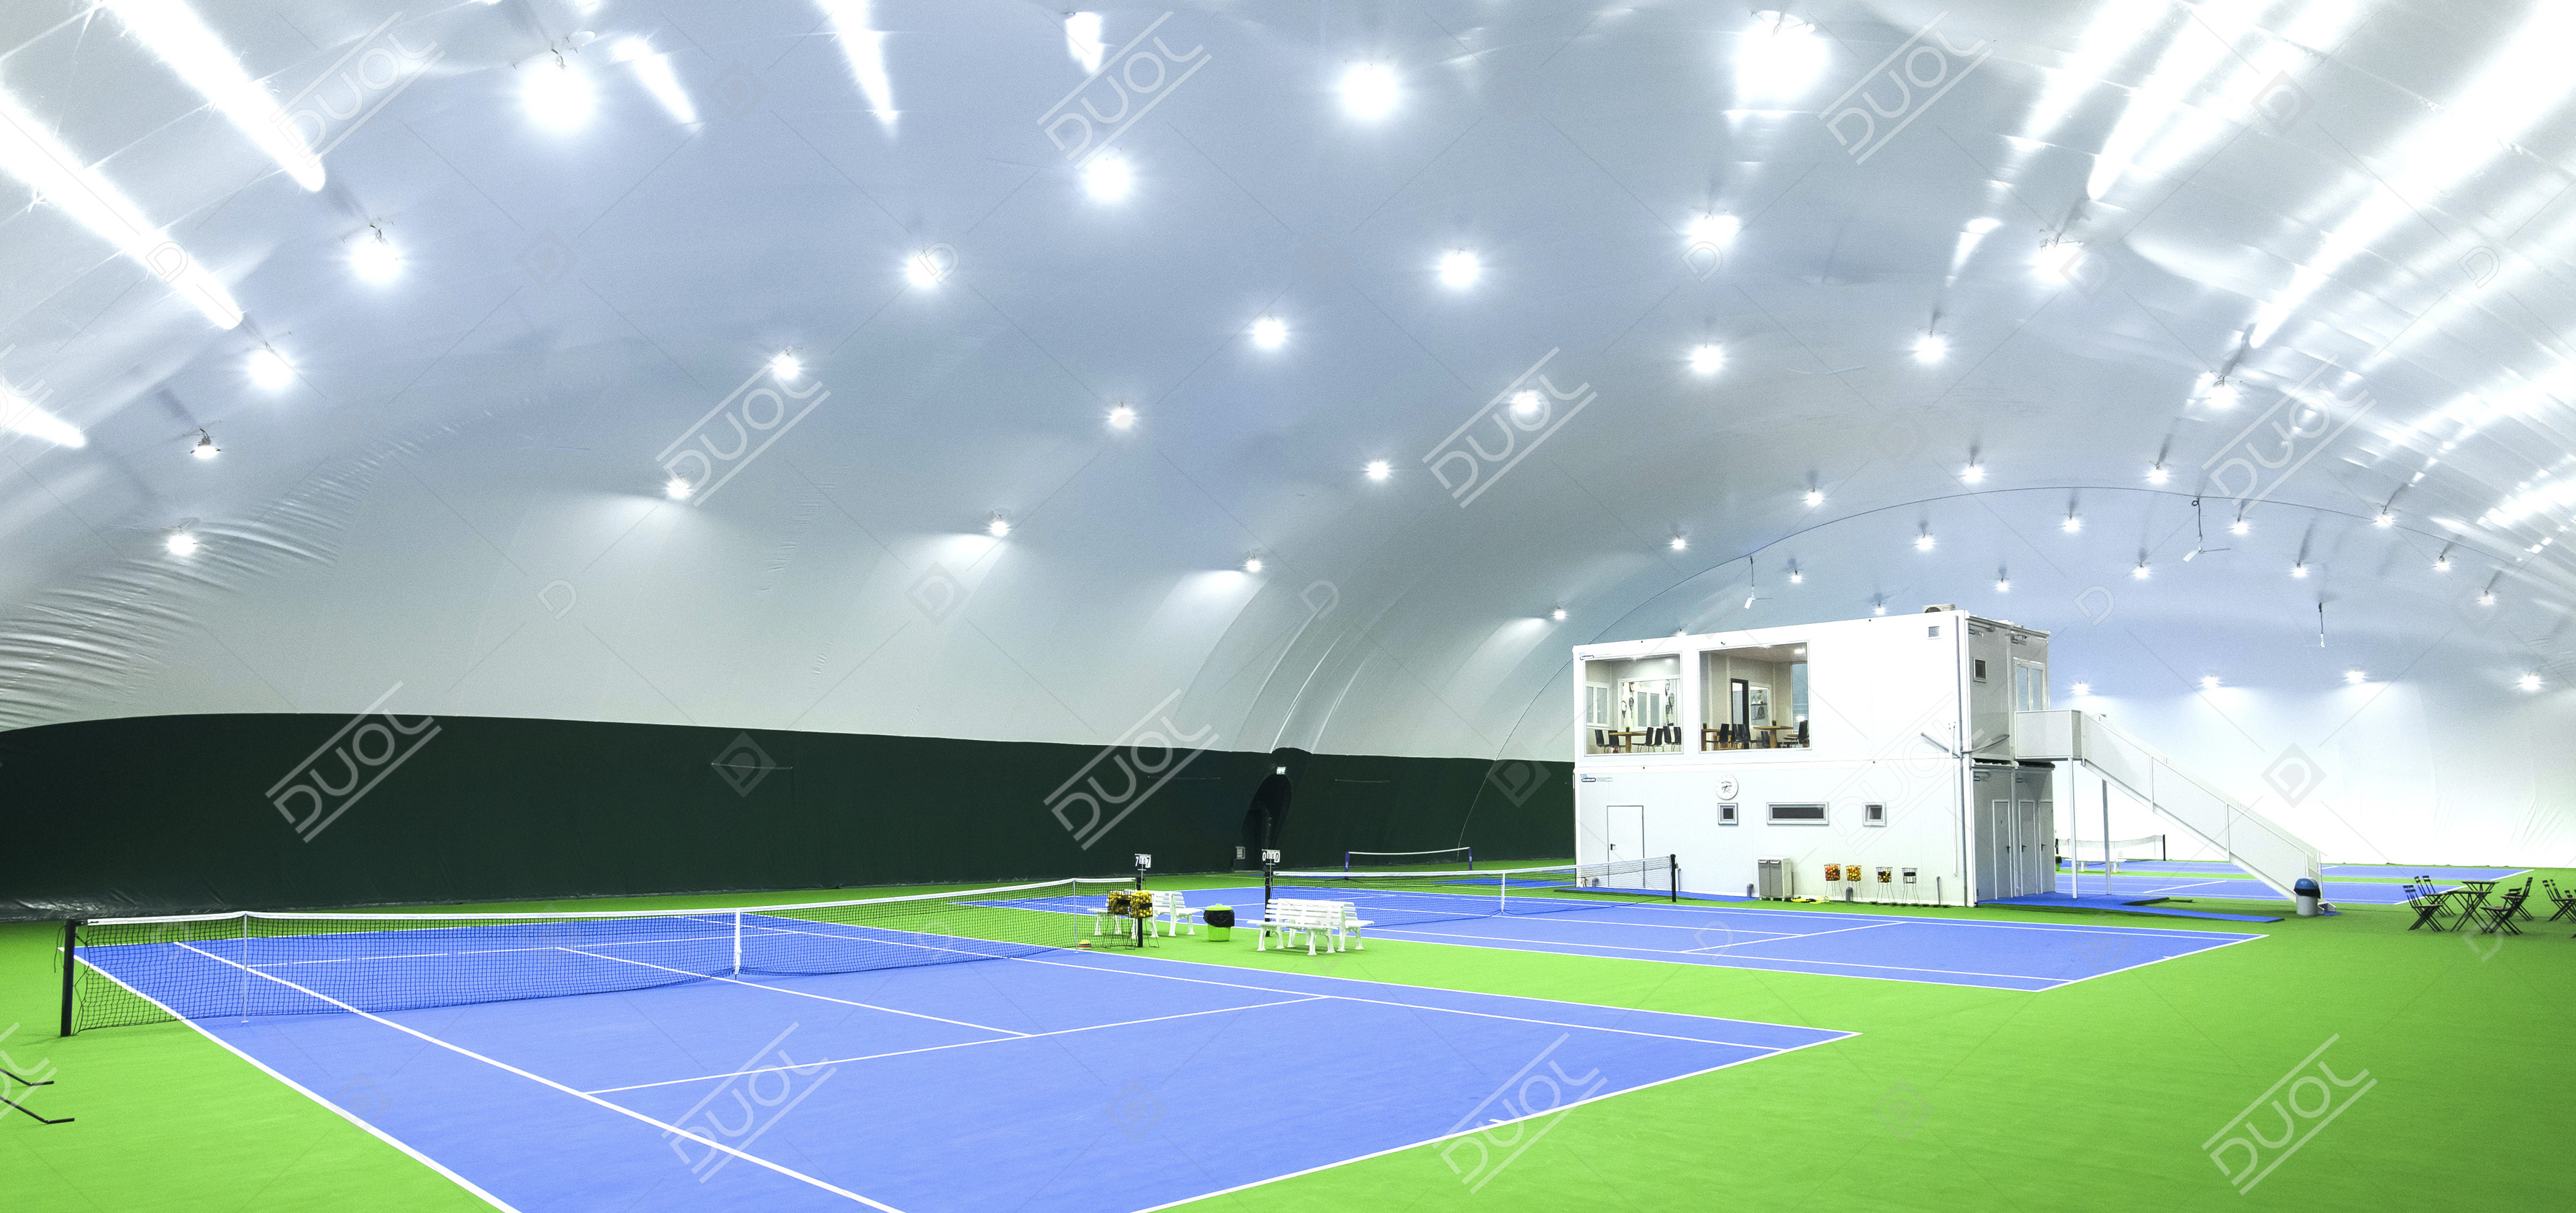 Tennis Bubble Tennis Air Dome Duol Air Supported Structure